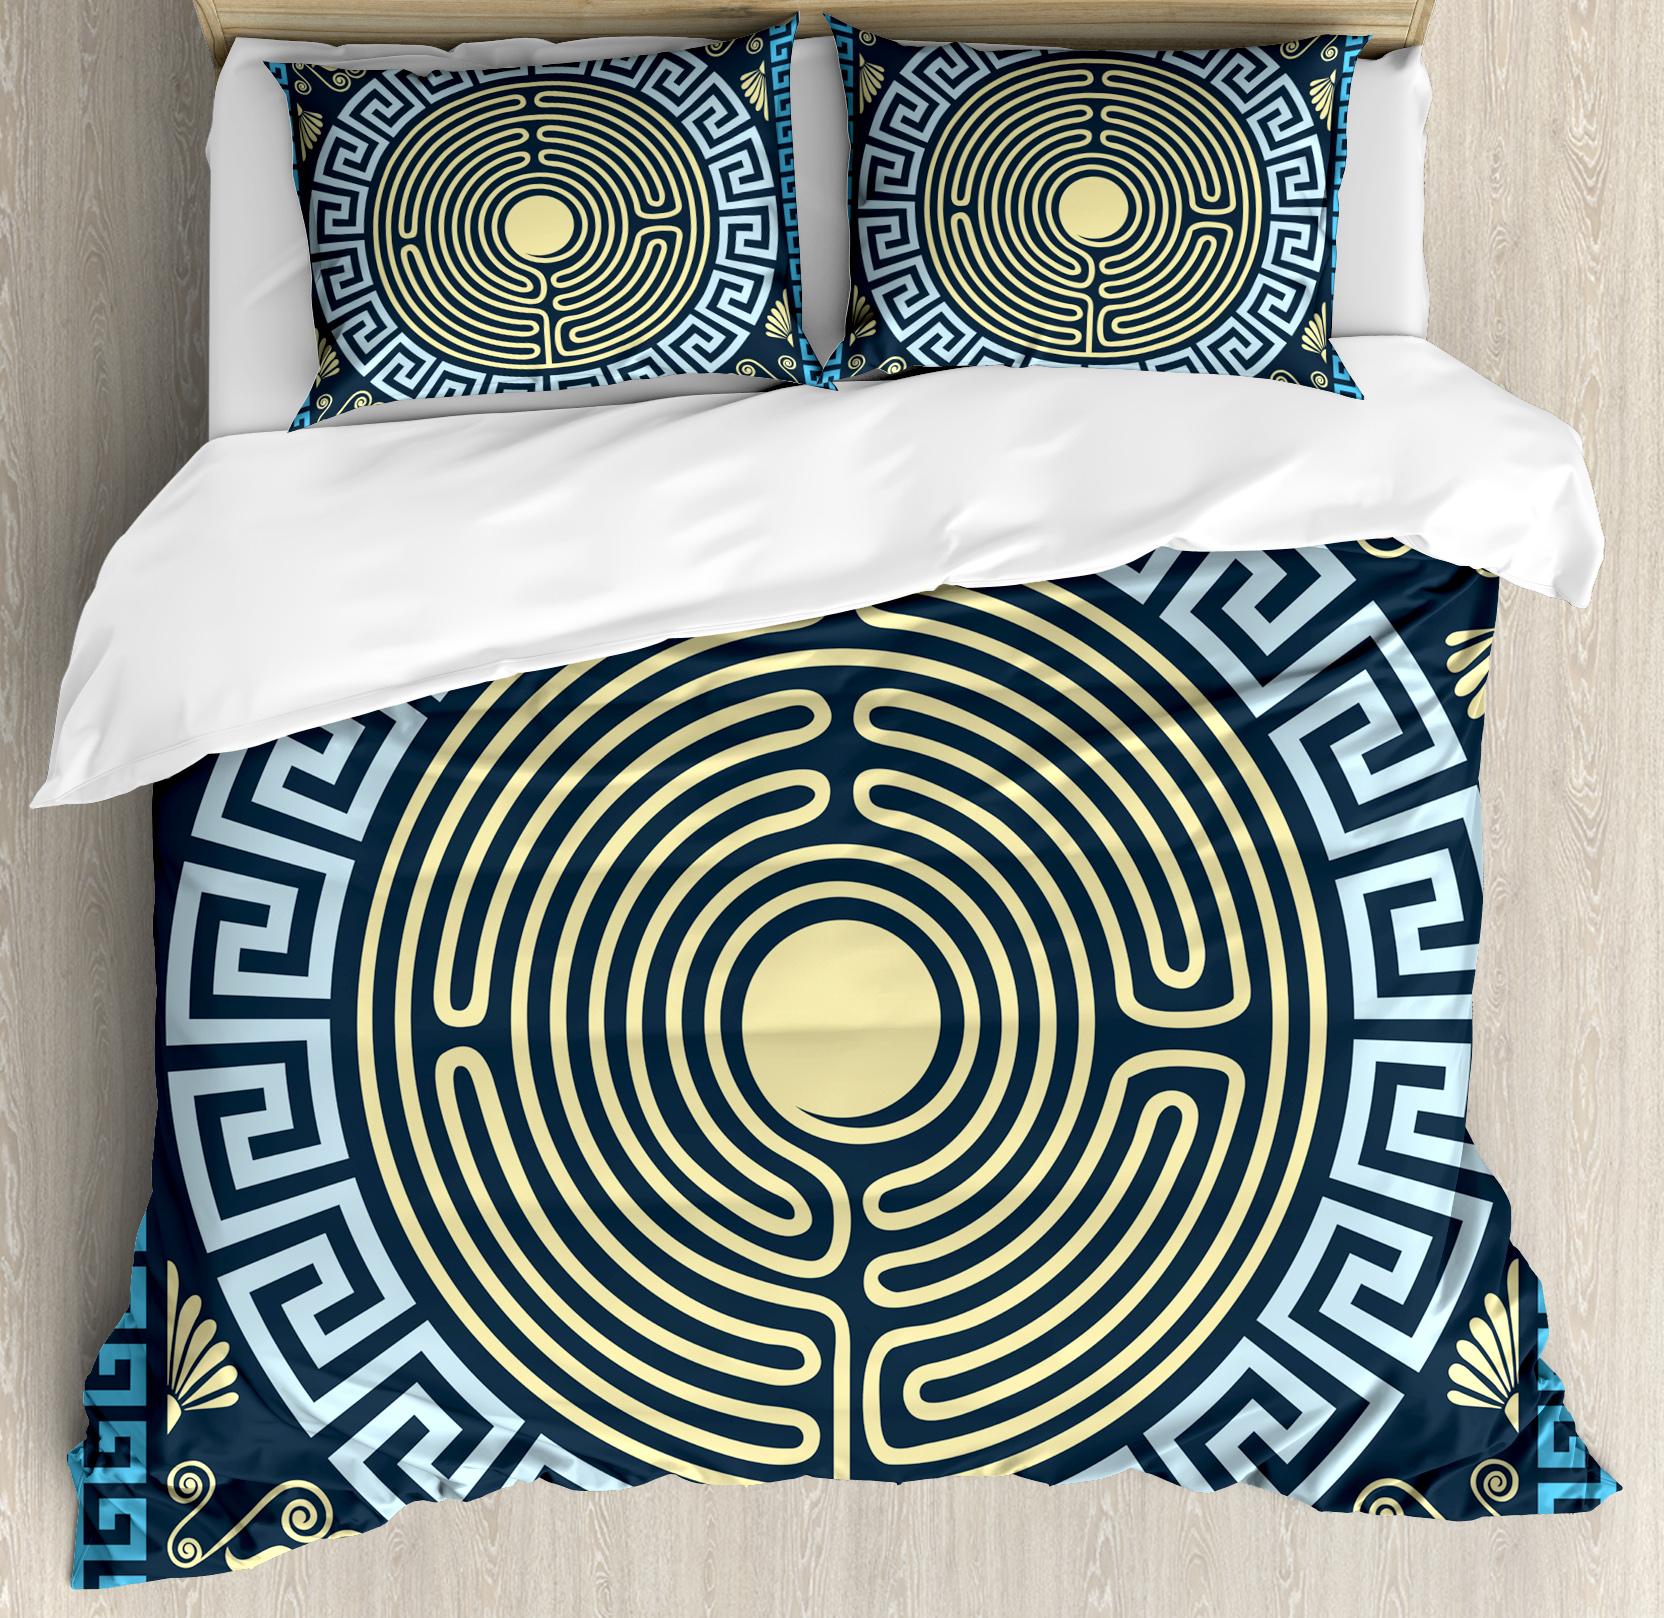 Greek Key Duvet Cover Set, Yellow and Blue Labyrinth Pattern from Ancient Culture with Floral Details, Decorative Bedding Set with Pillow Shams, Pale Yellow Blue, by Ambesonne